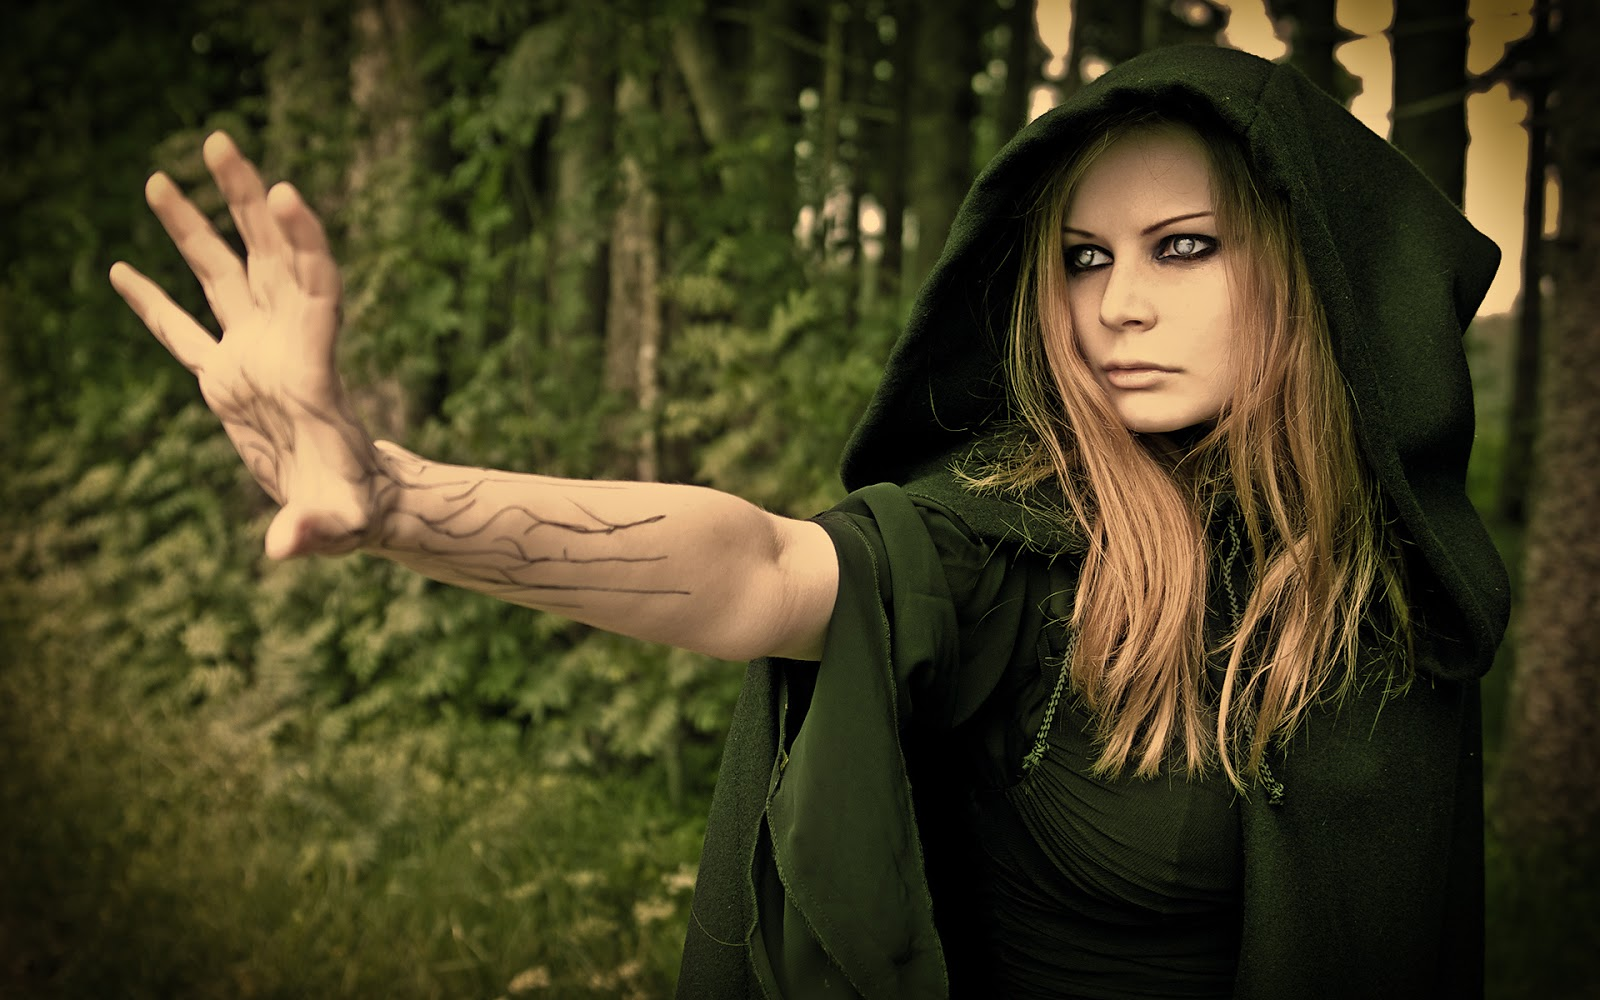 Wallpaper World Evil Witch Wallpapers 1600x1000